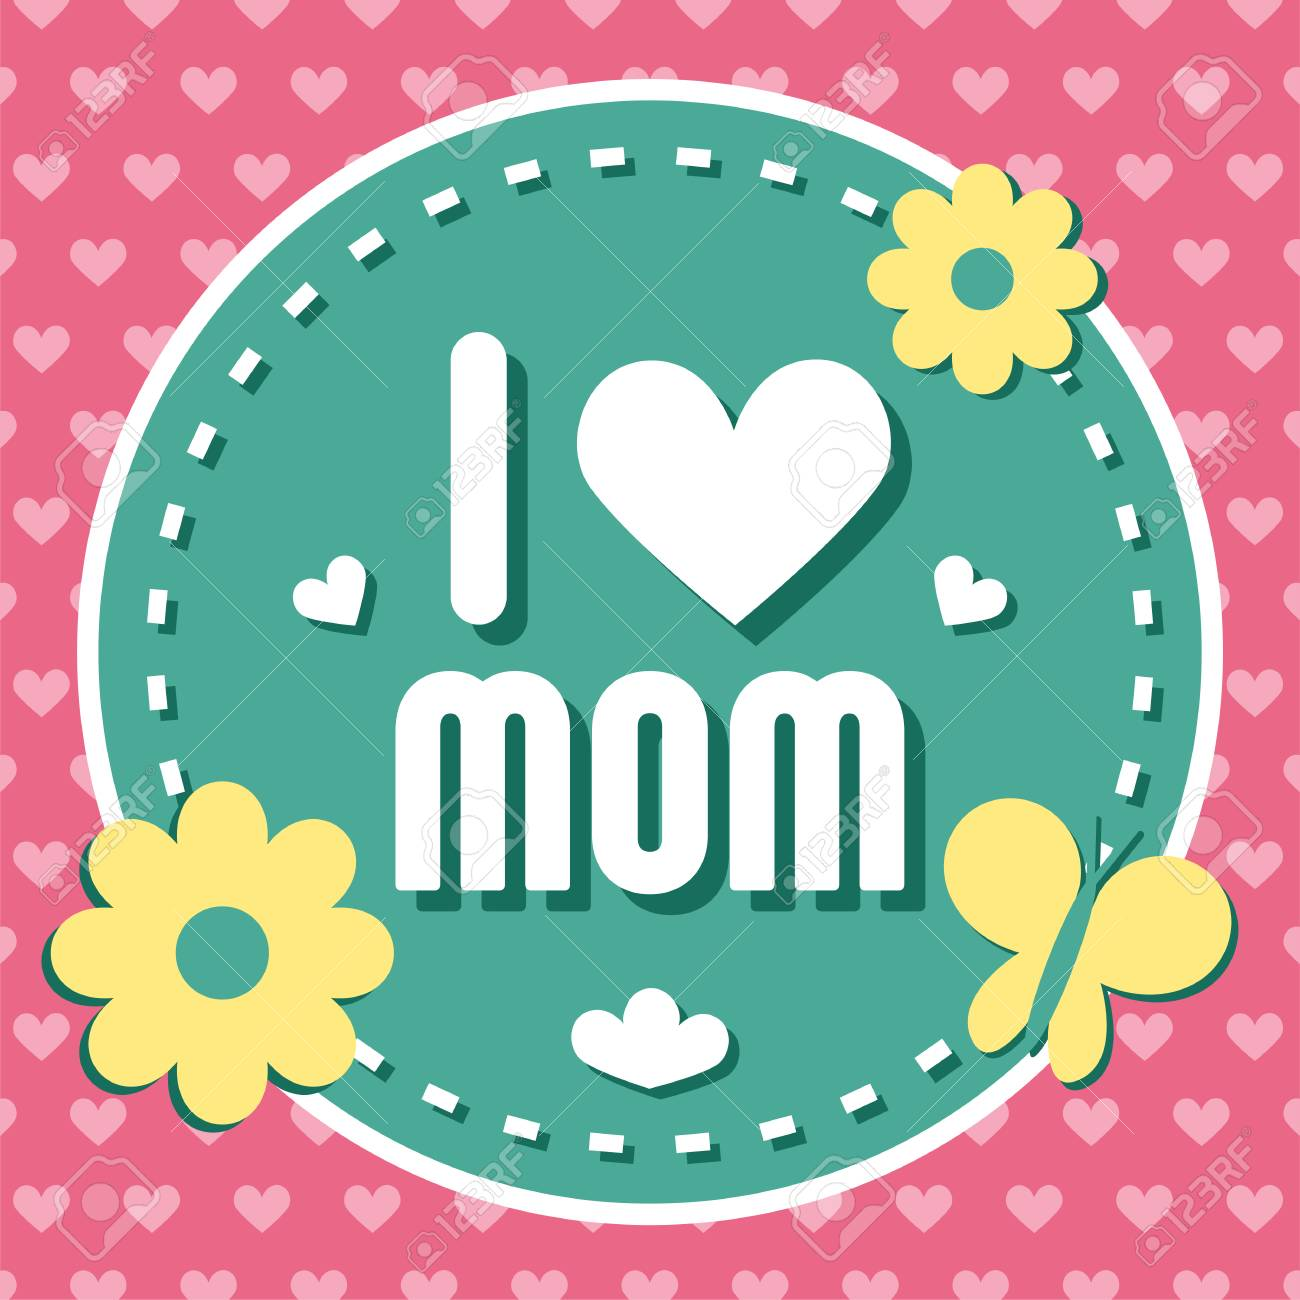 Colorful I Love Mom Emblem Vector Design Elements For Greeting Card And Other Print Templates